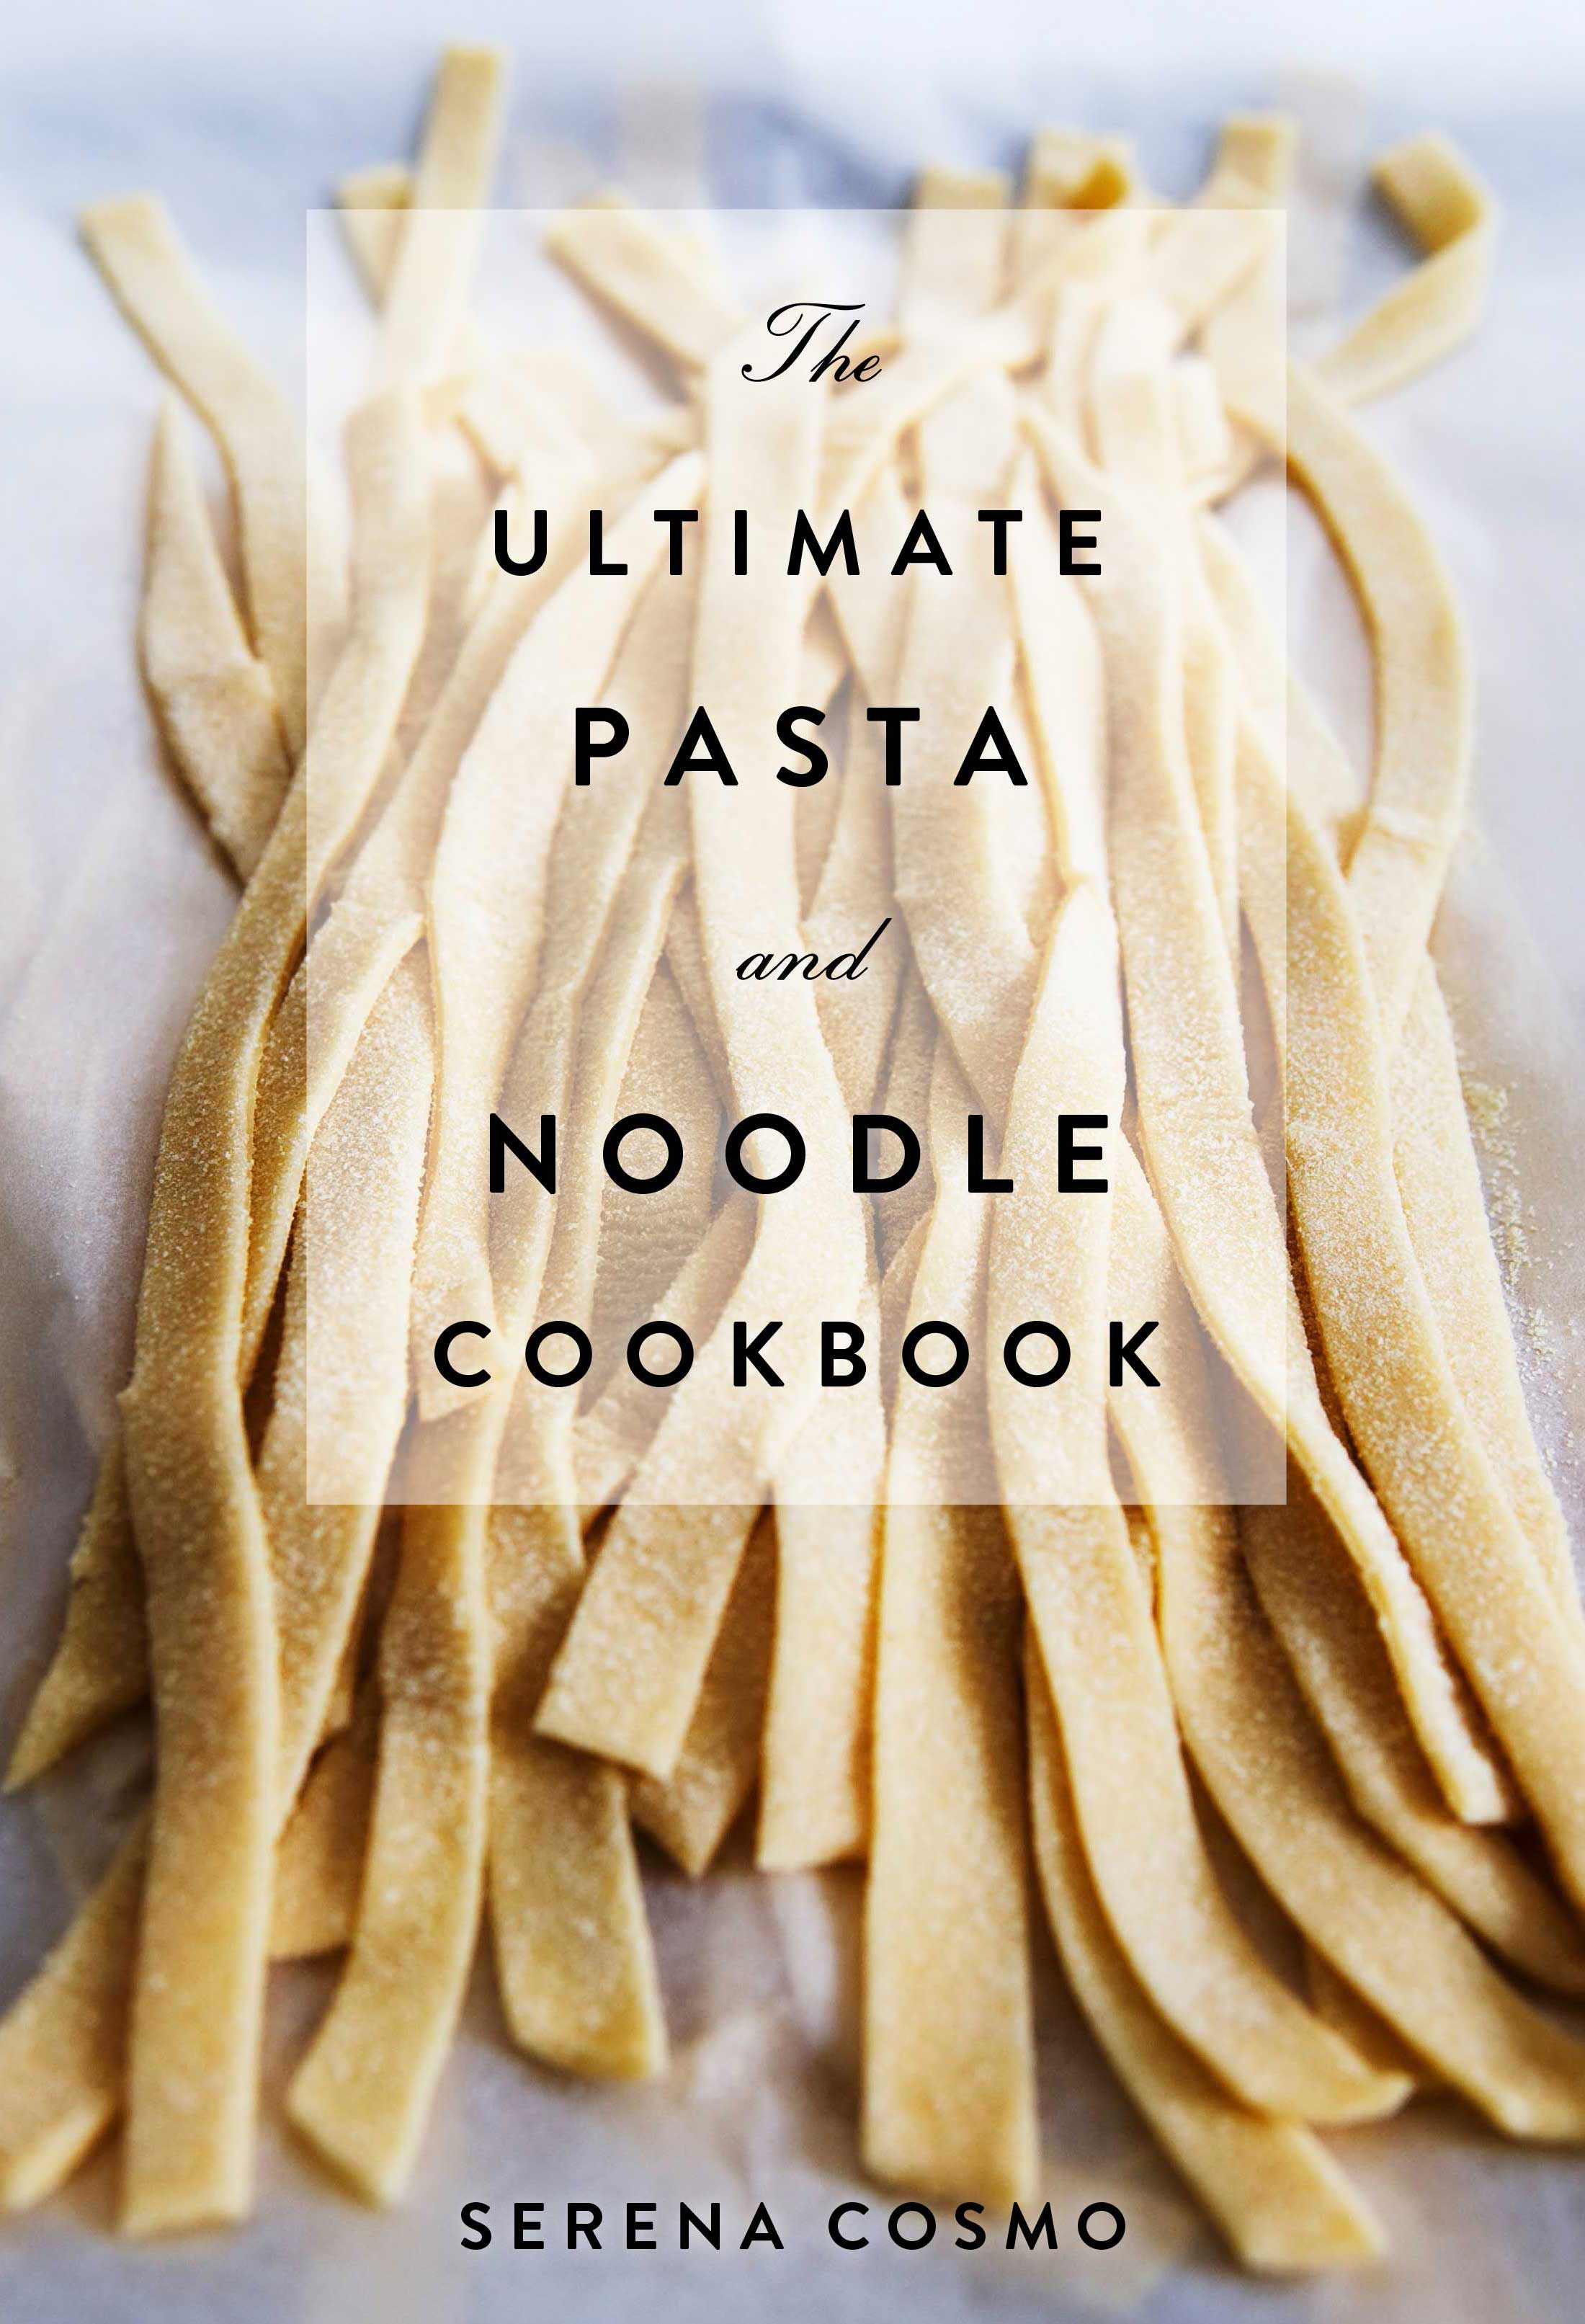 the ultimate pasta and noodle cookbook | rusticplate.com